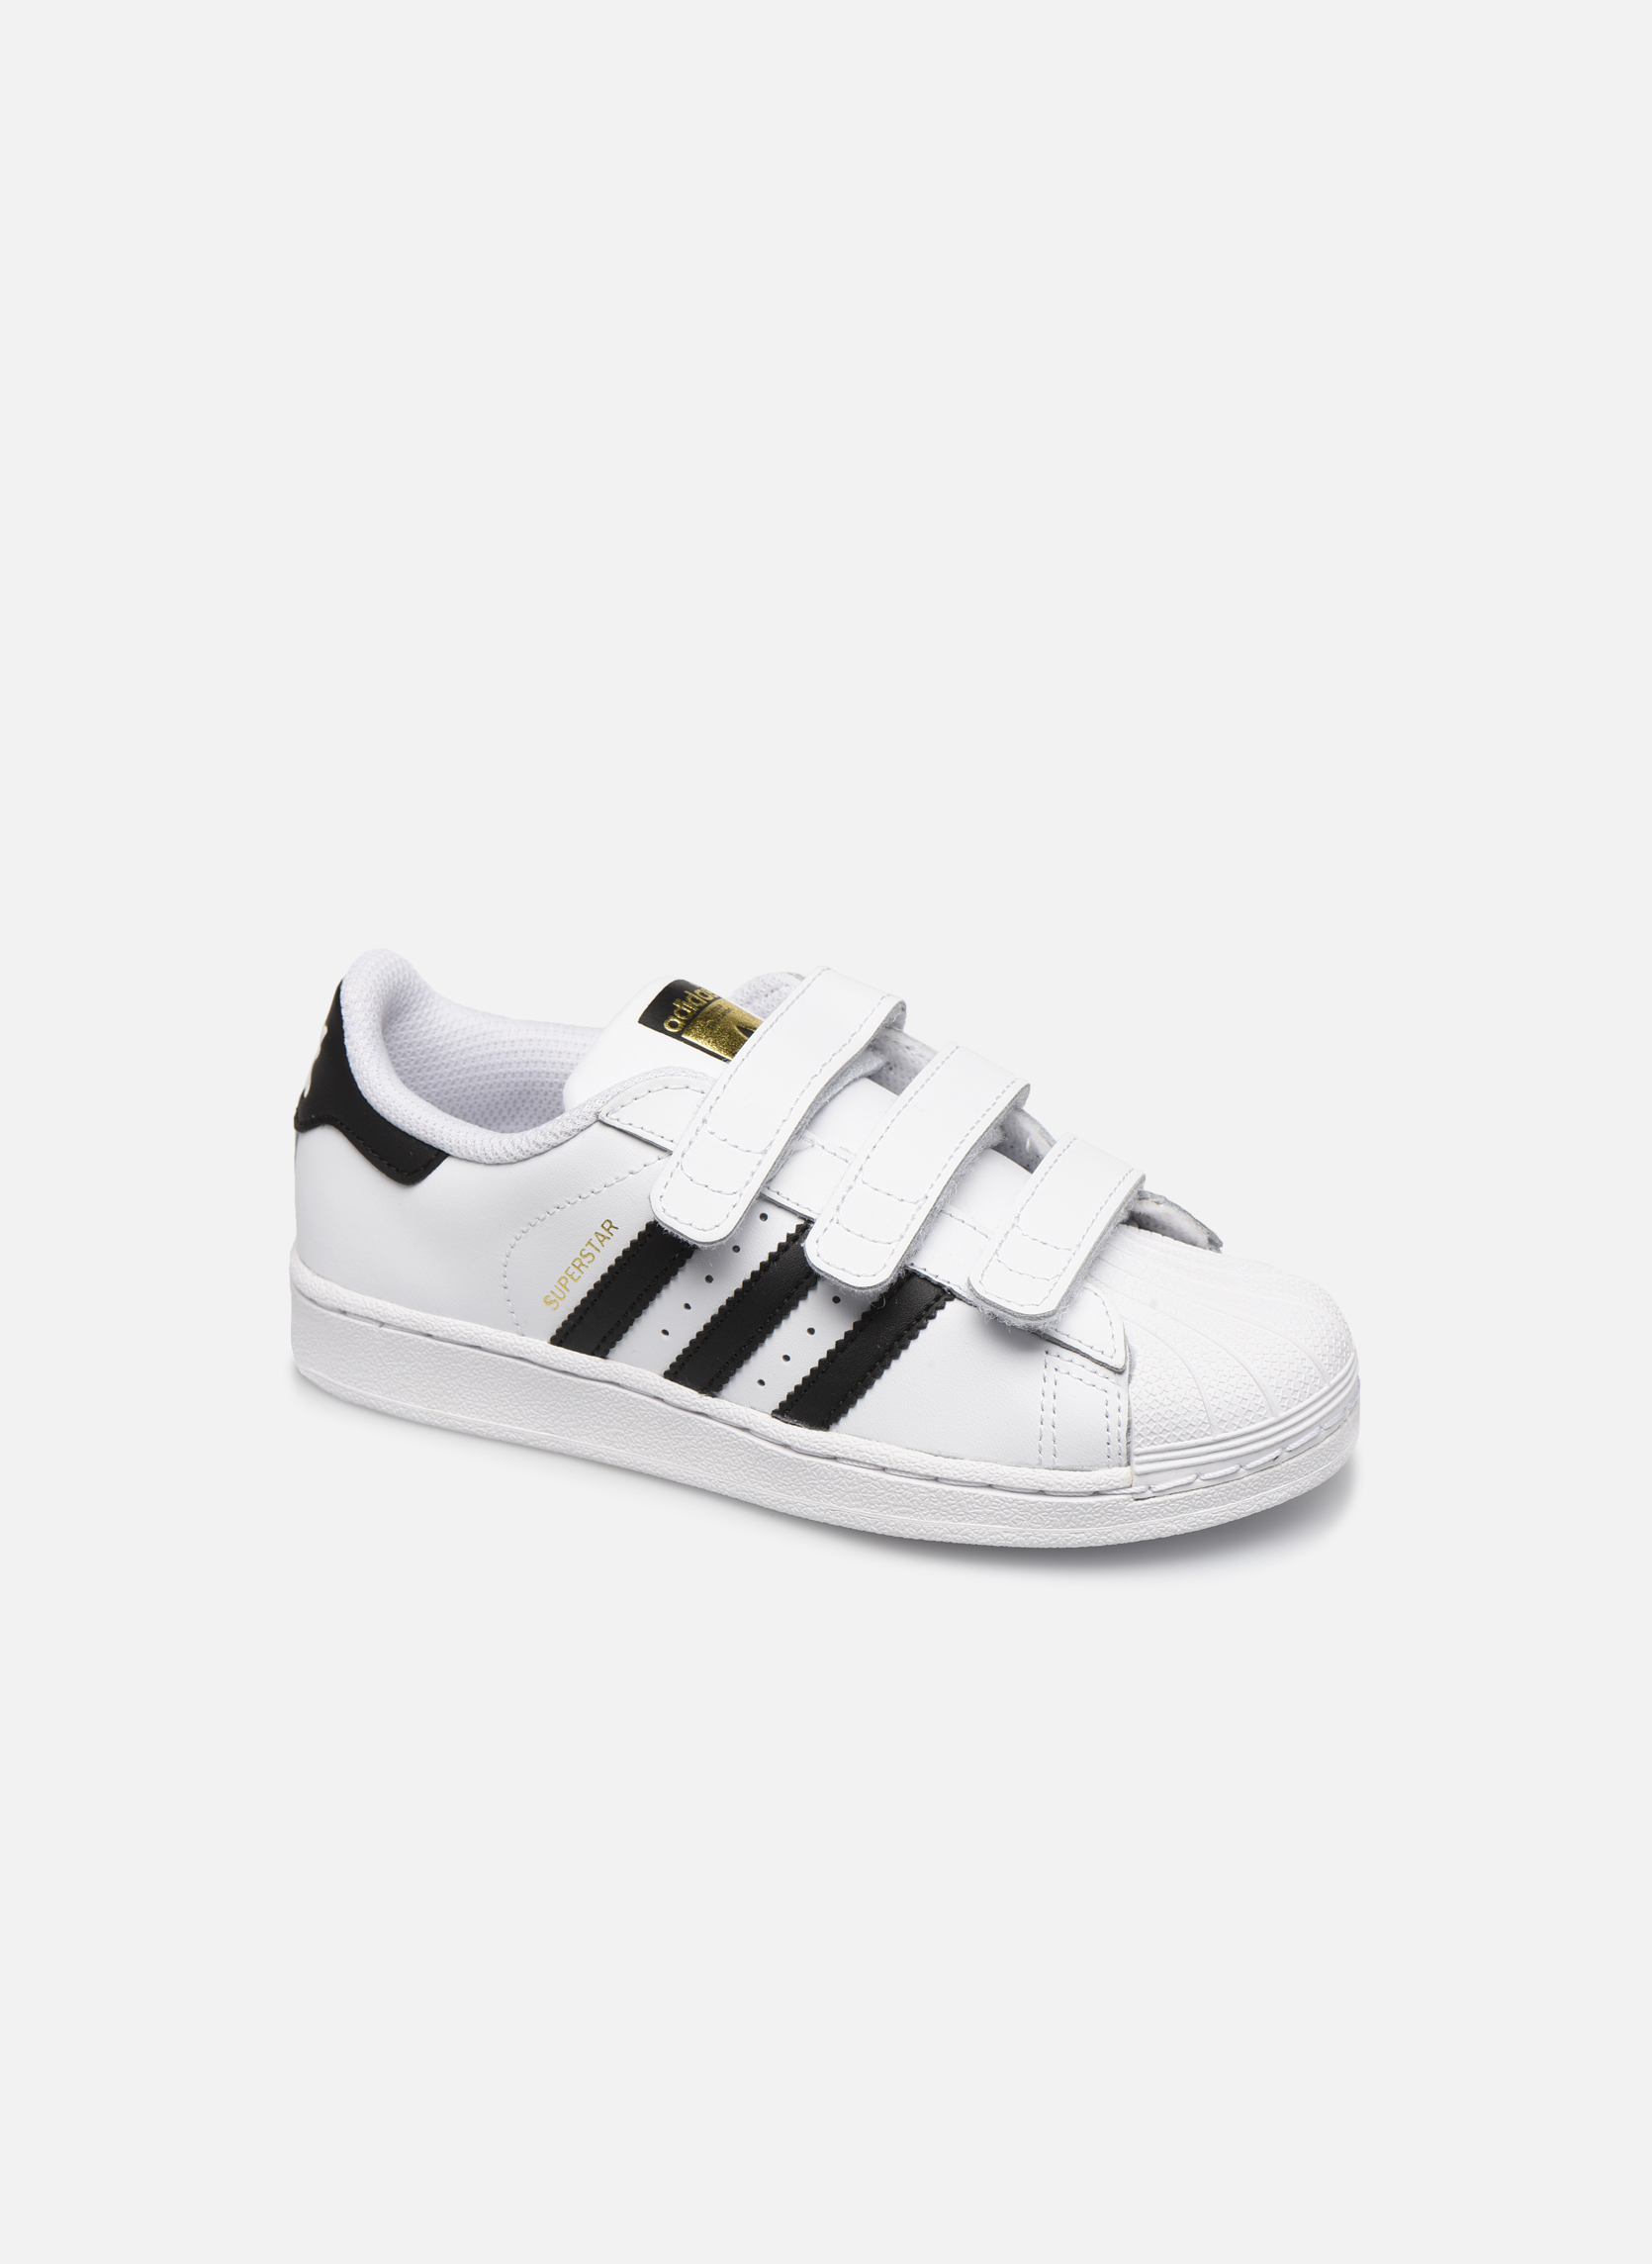 adidas superstar niño 31